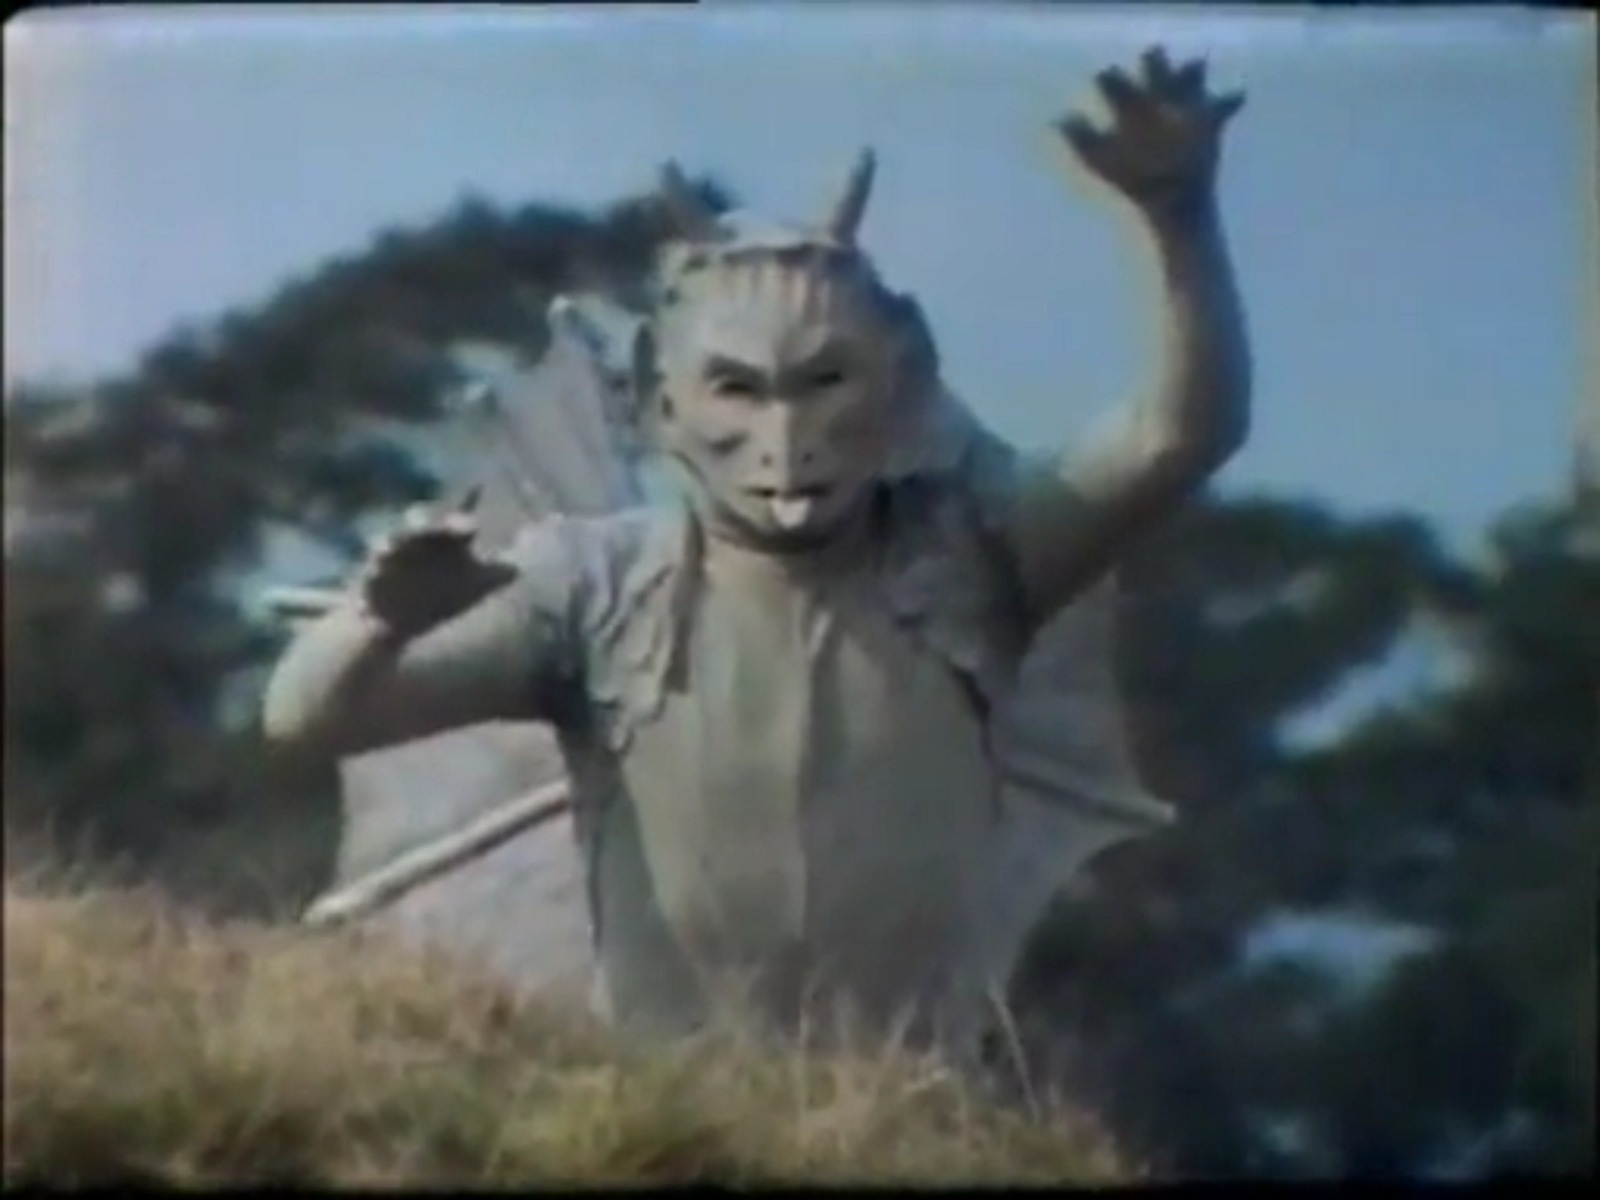 Image from a really old episode of Doctor Who